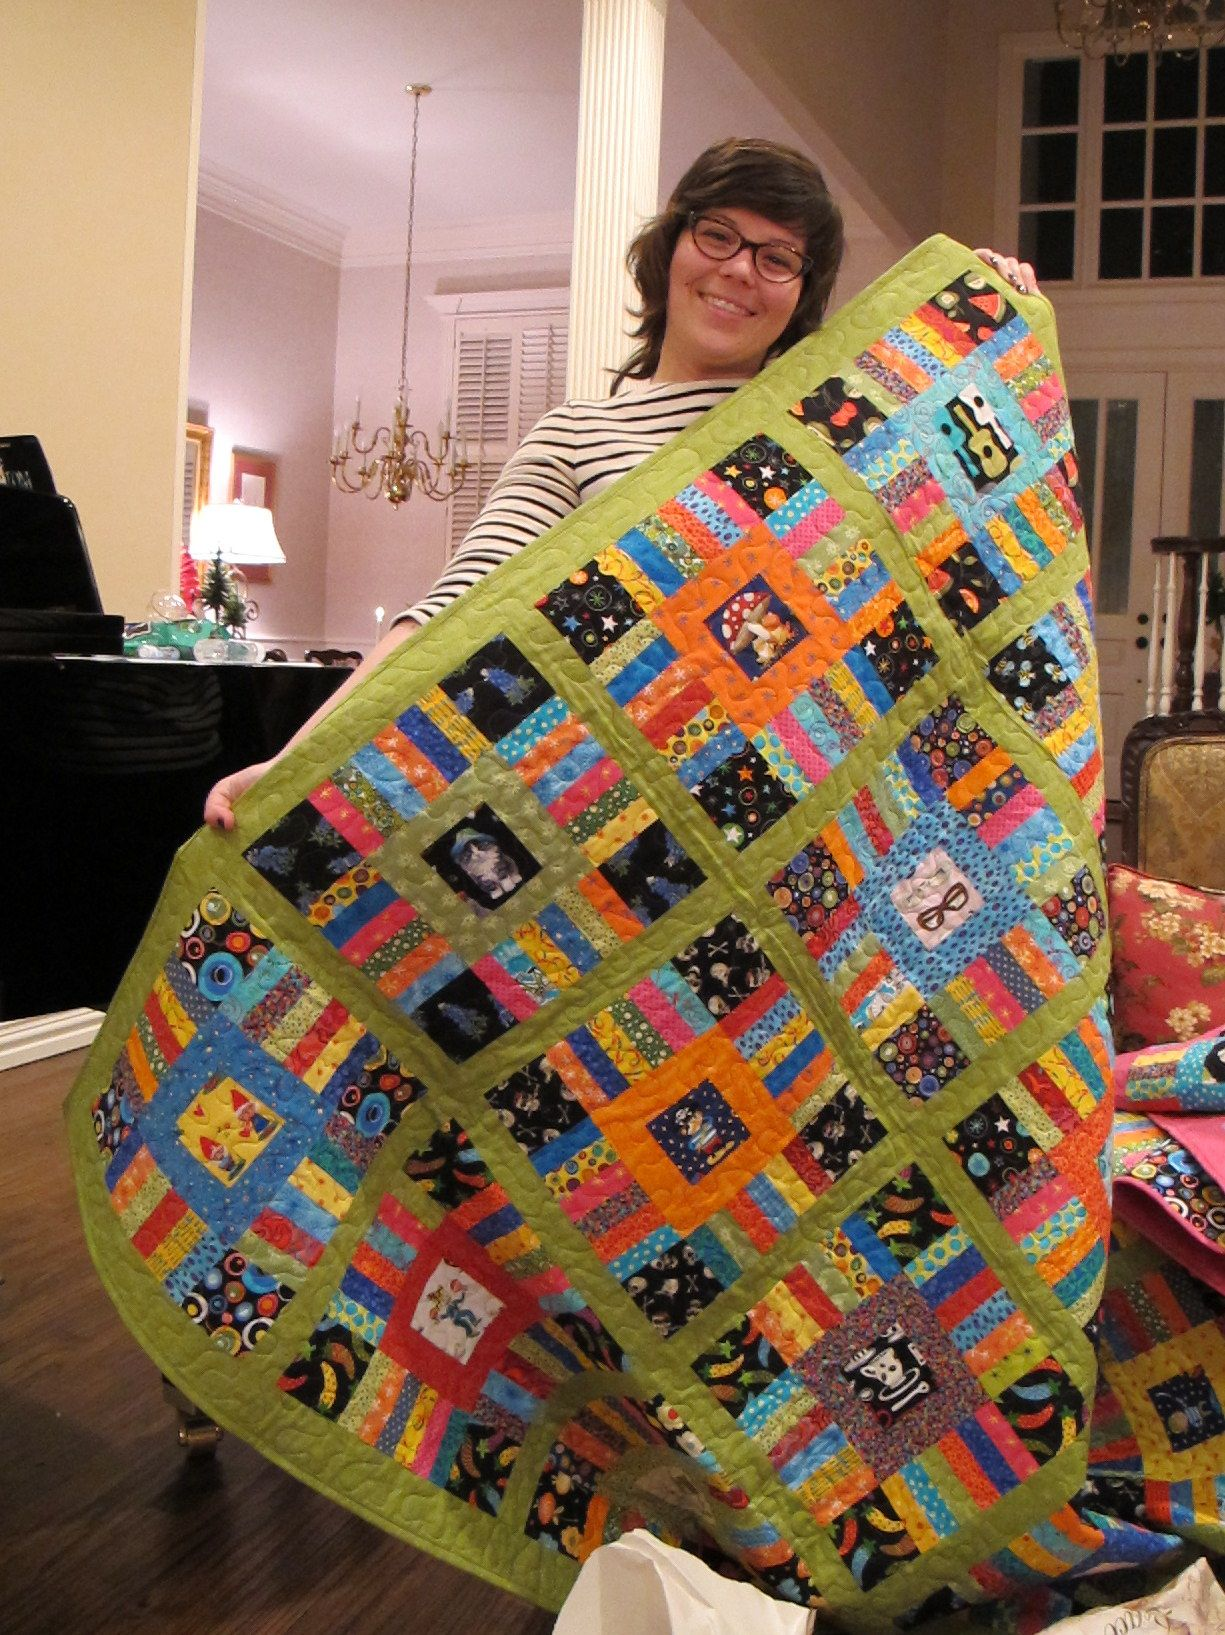 Carolyn with her quilt